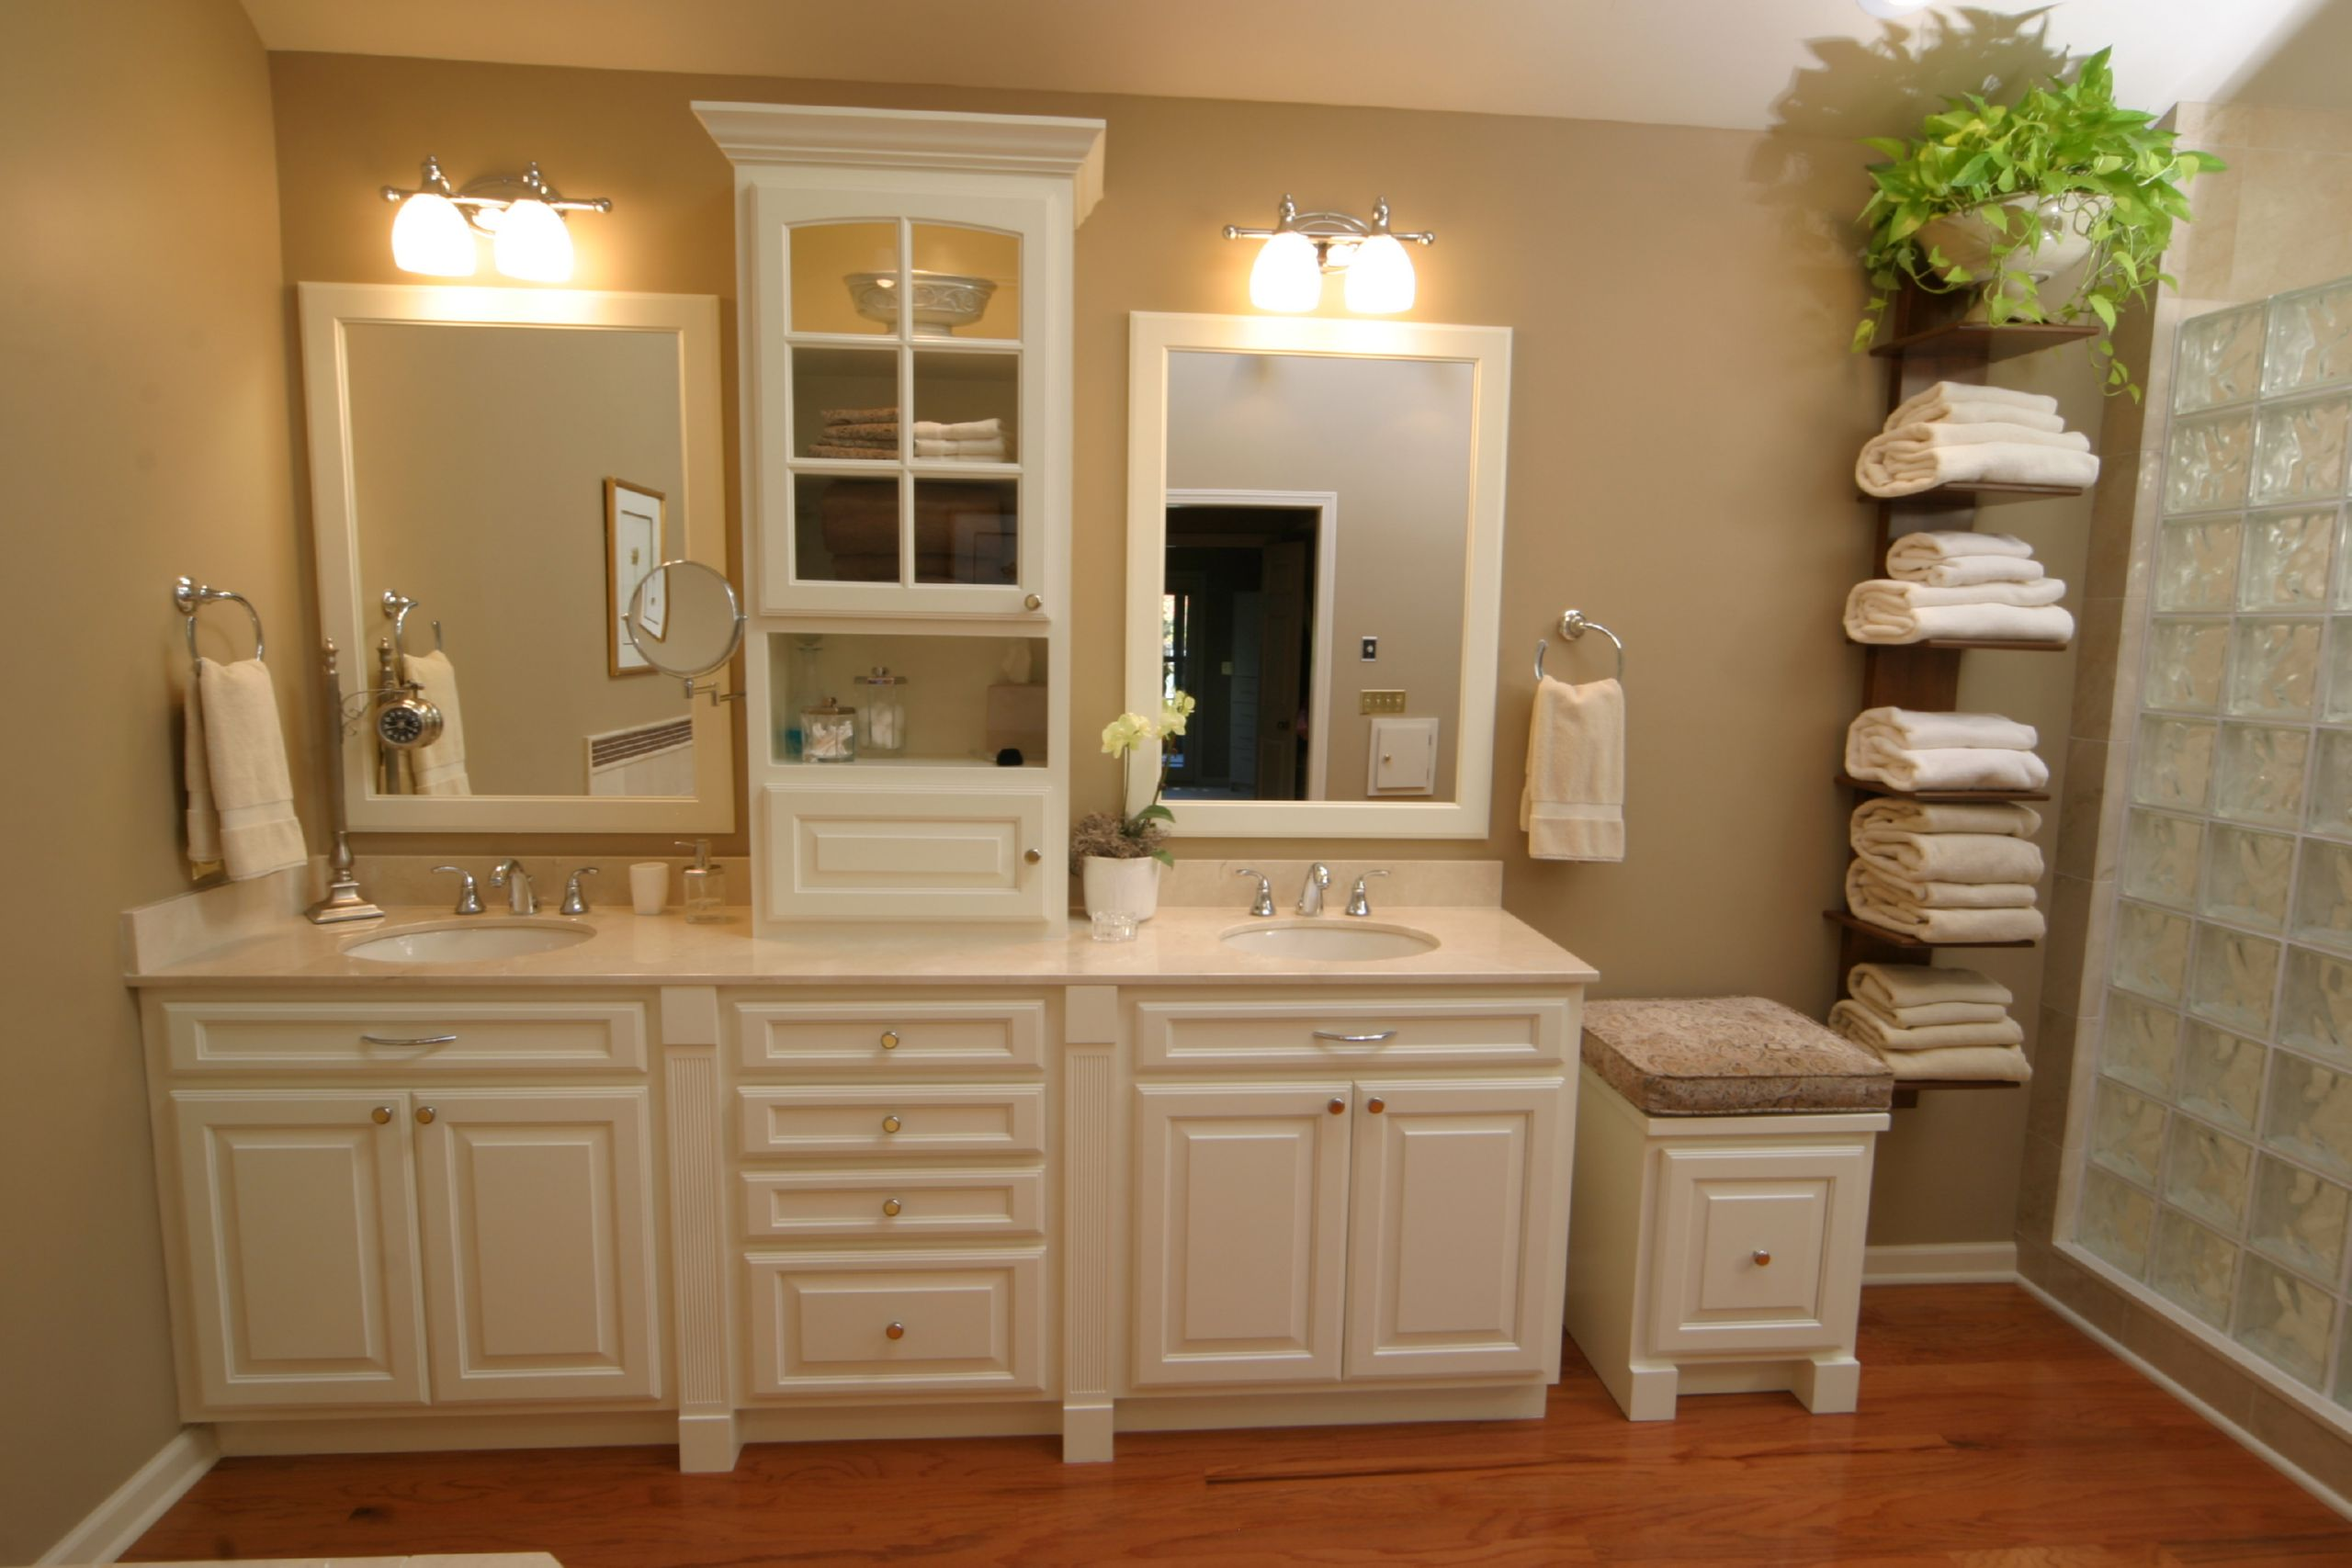 Bathroom remodeling bath remodel contractor for Pictures of remodel bathrooms